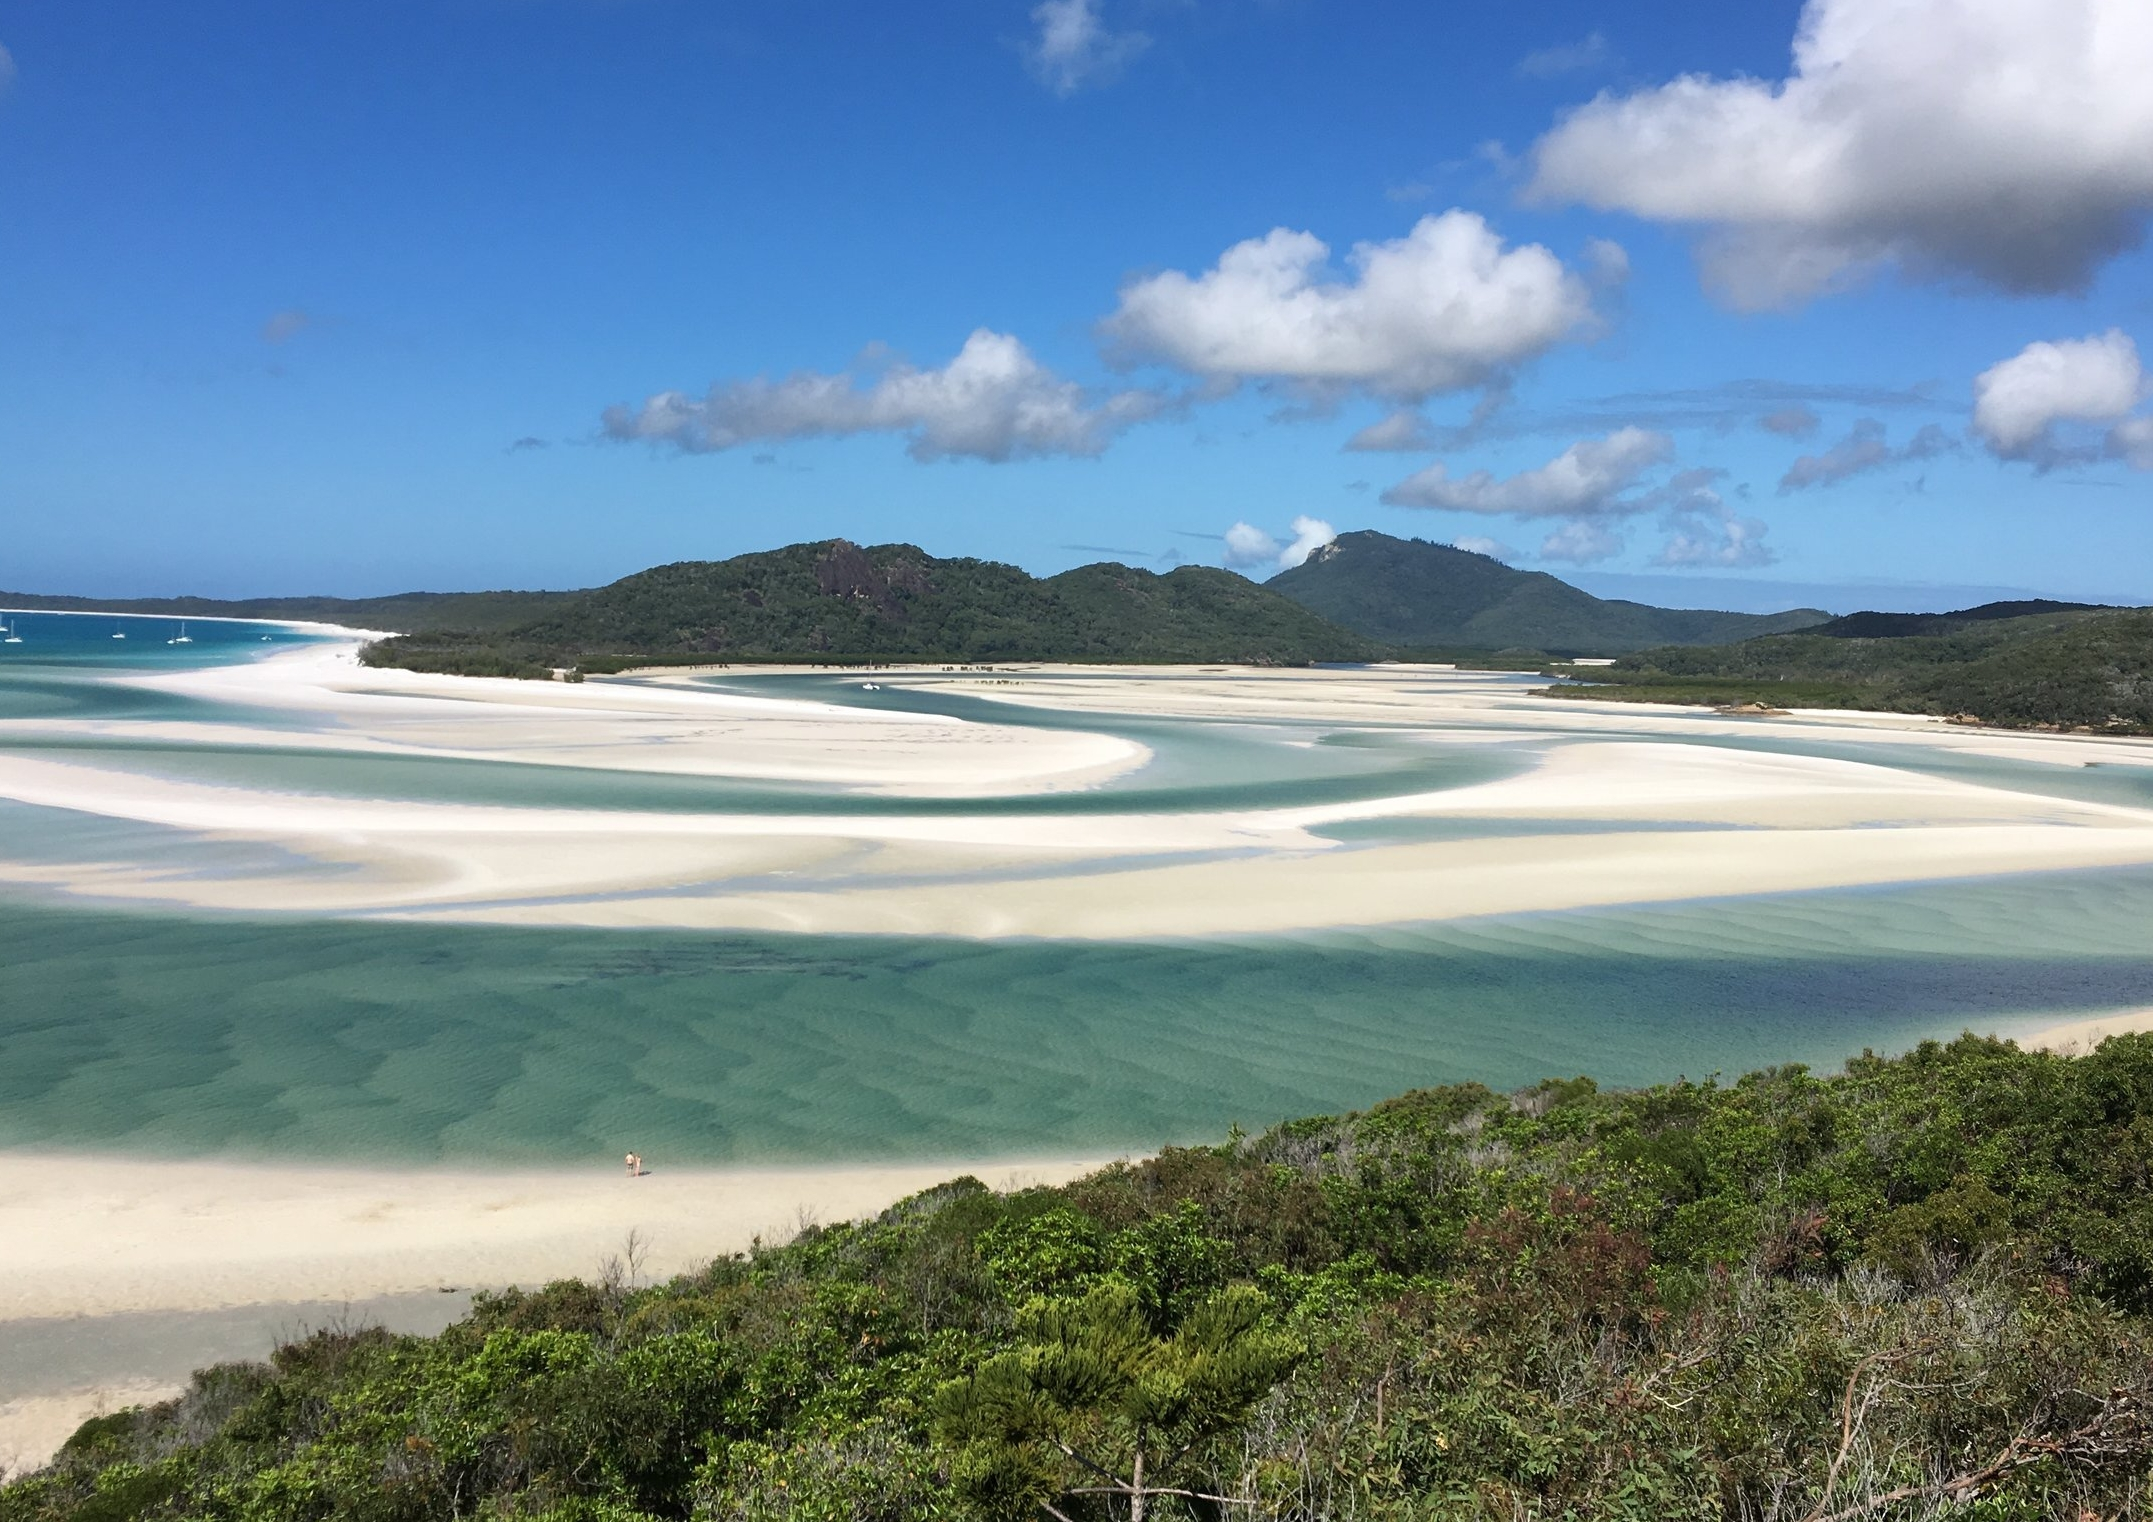 cairns to sydney travel guide